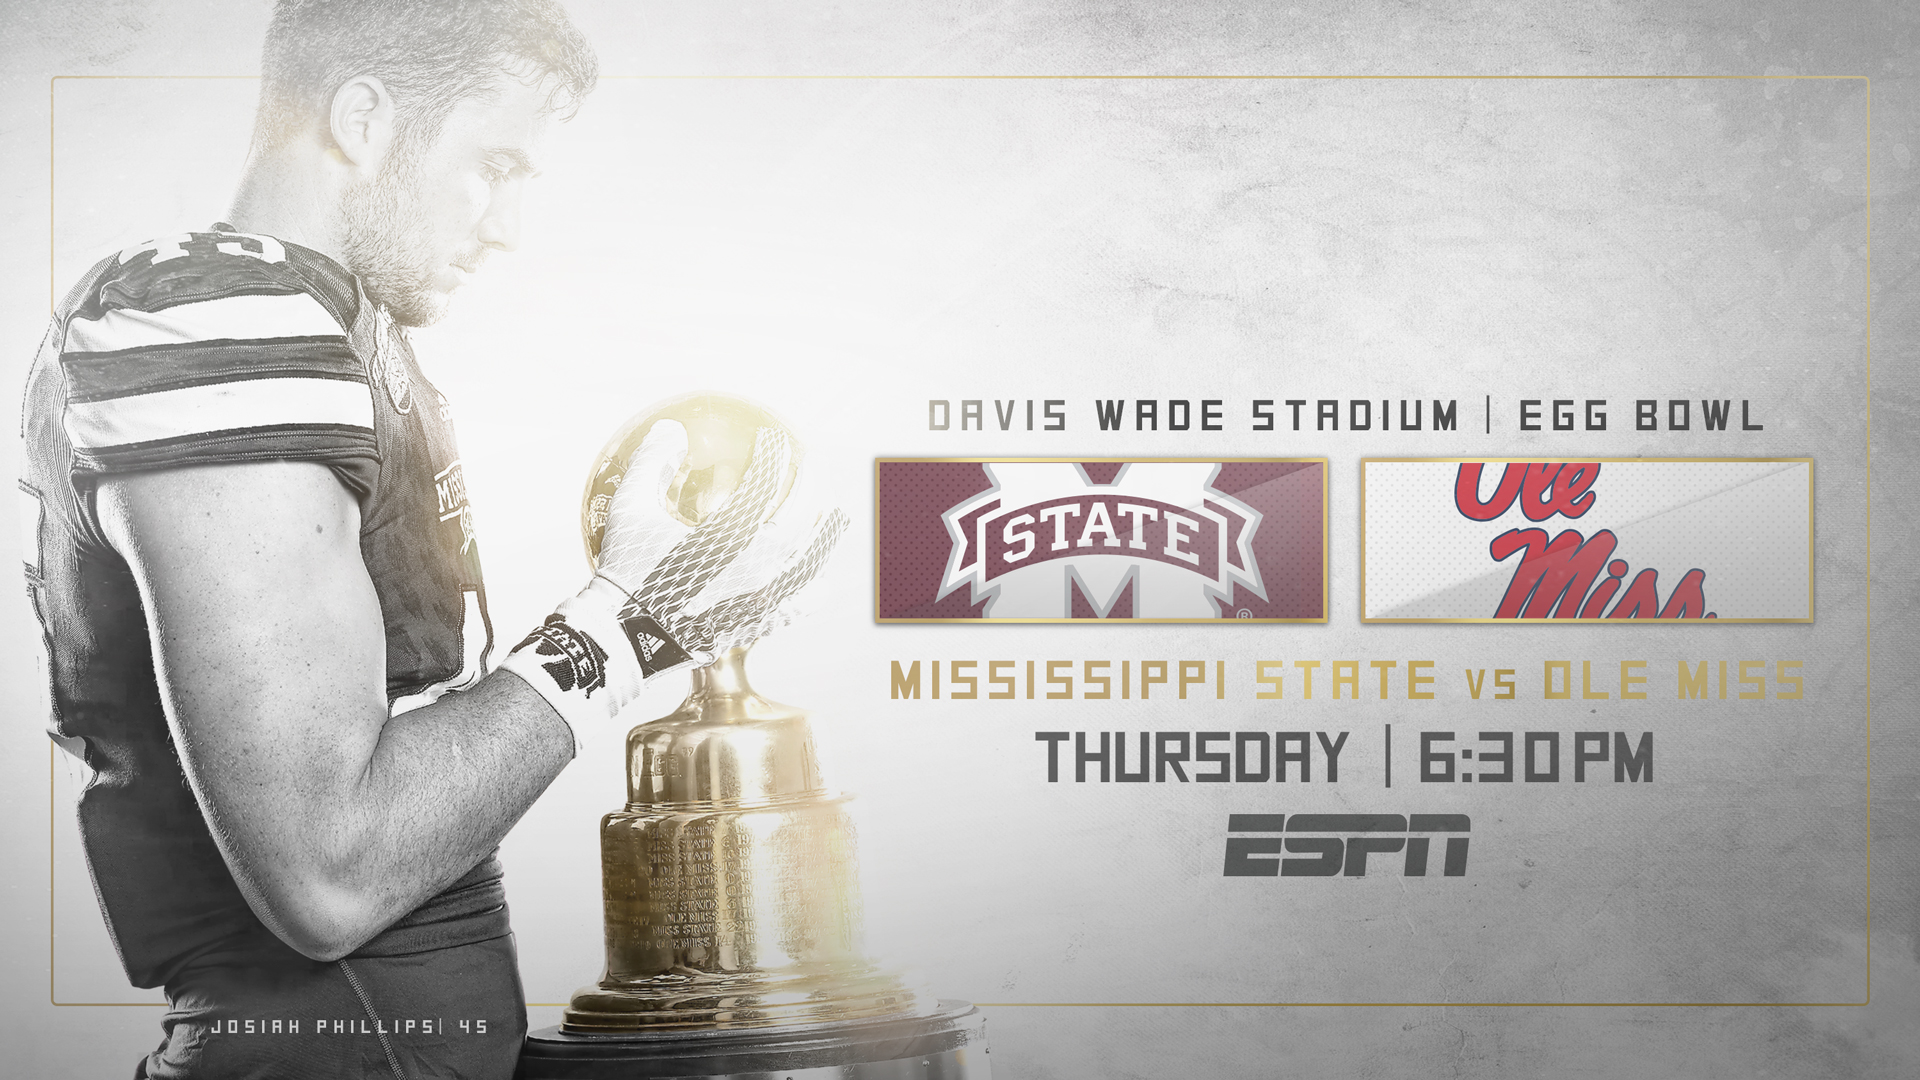 Ole miss gameday colors 2015 - Gameday No 14 Msu Ole Miss Renew Thanksgiving Rivalry In 90th Battle For